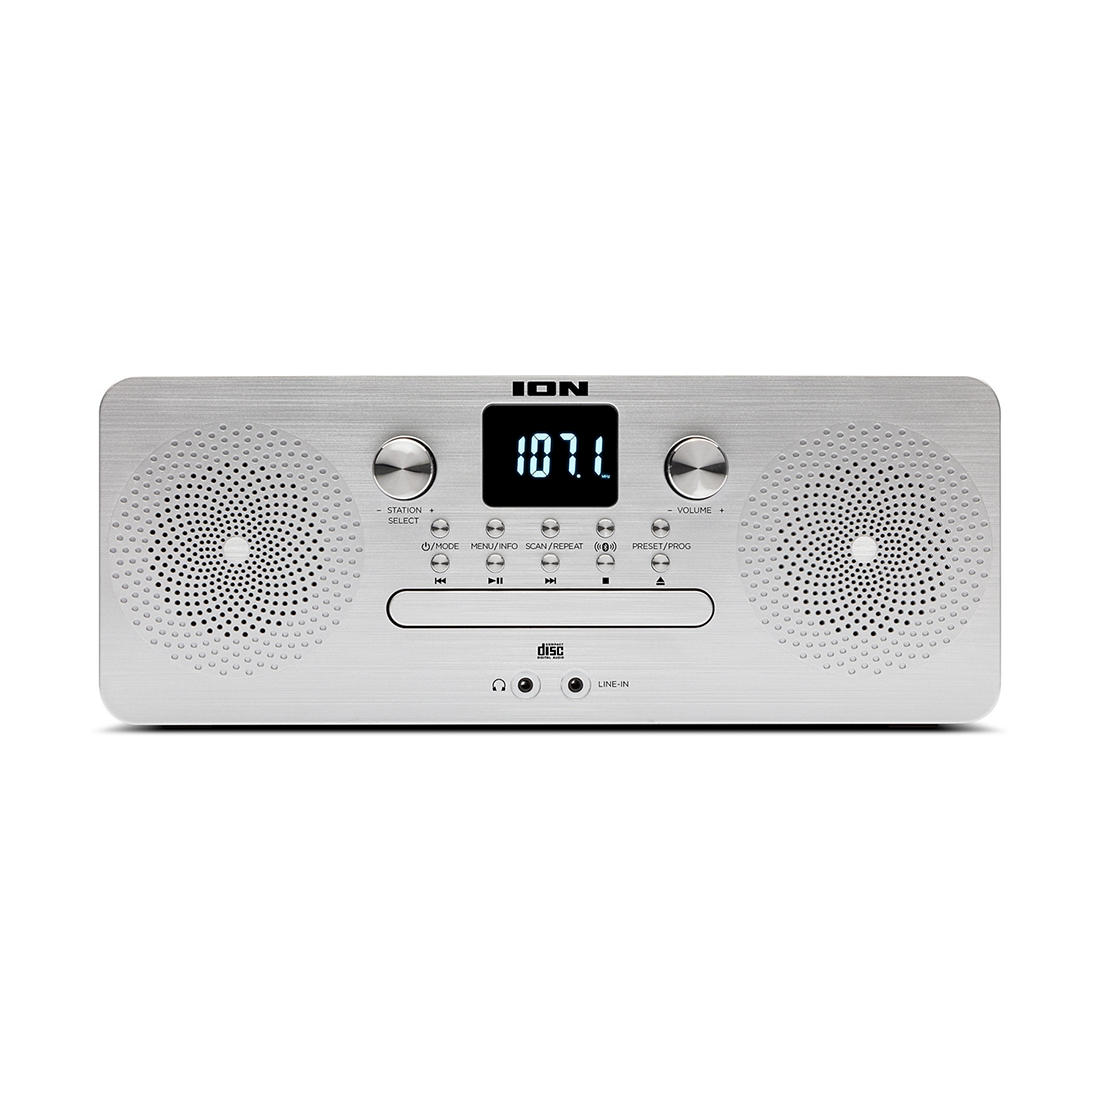 Under Kitchen Counter CD Player with Radio and Bluetooth,Xmas Gift Music Silver